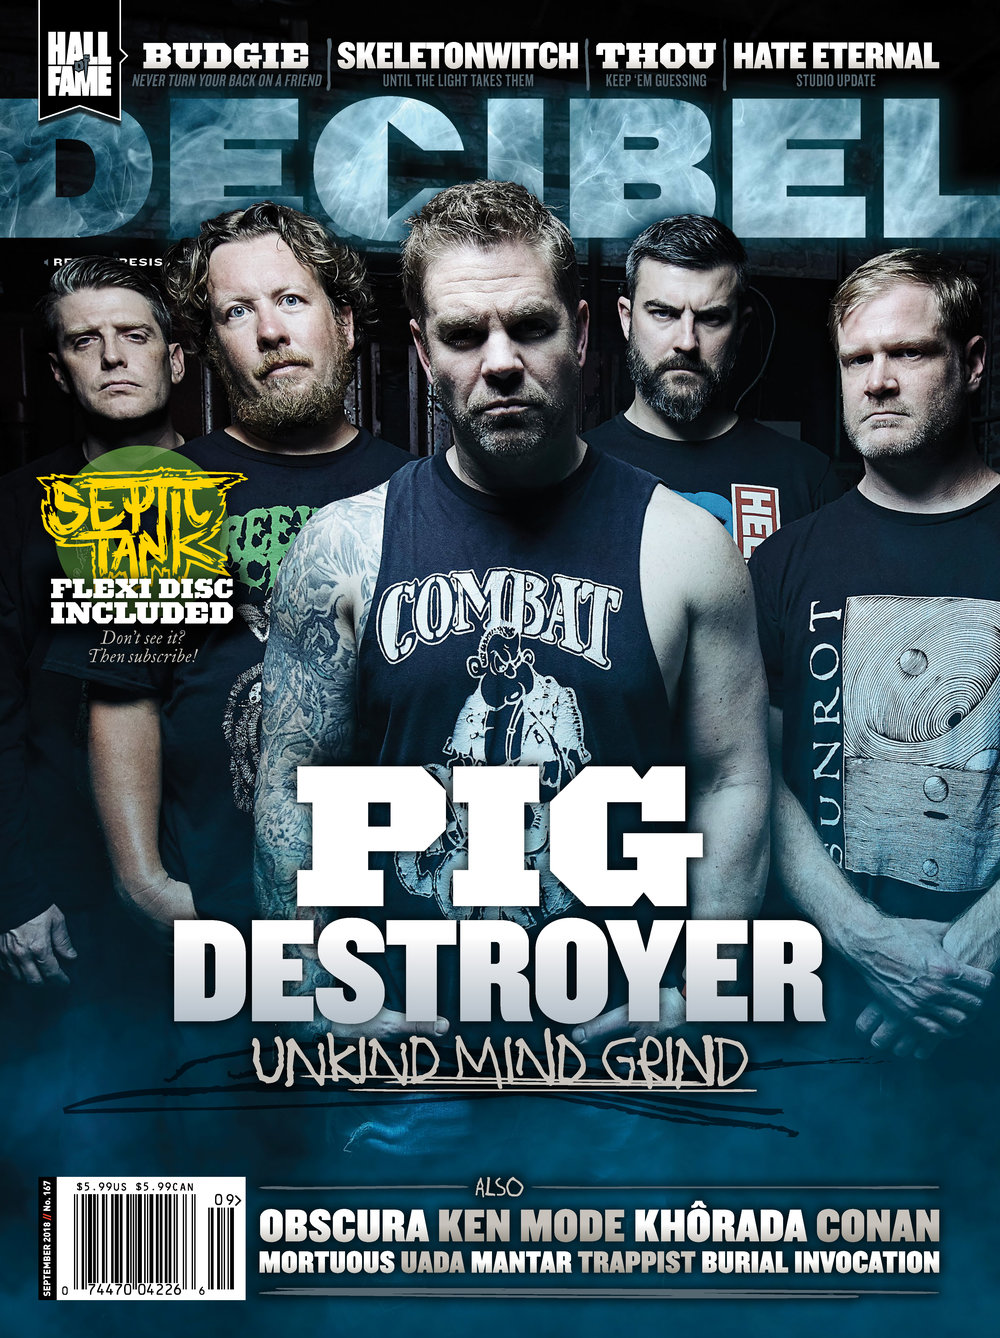 dB167_PigDestroyer_Page_1.jpg